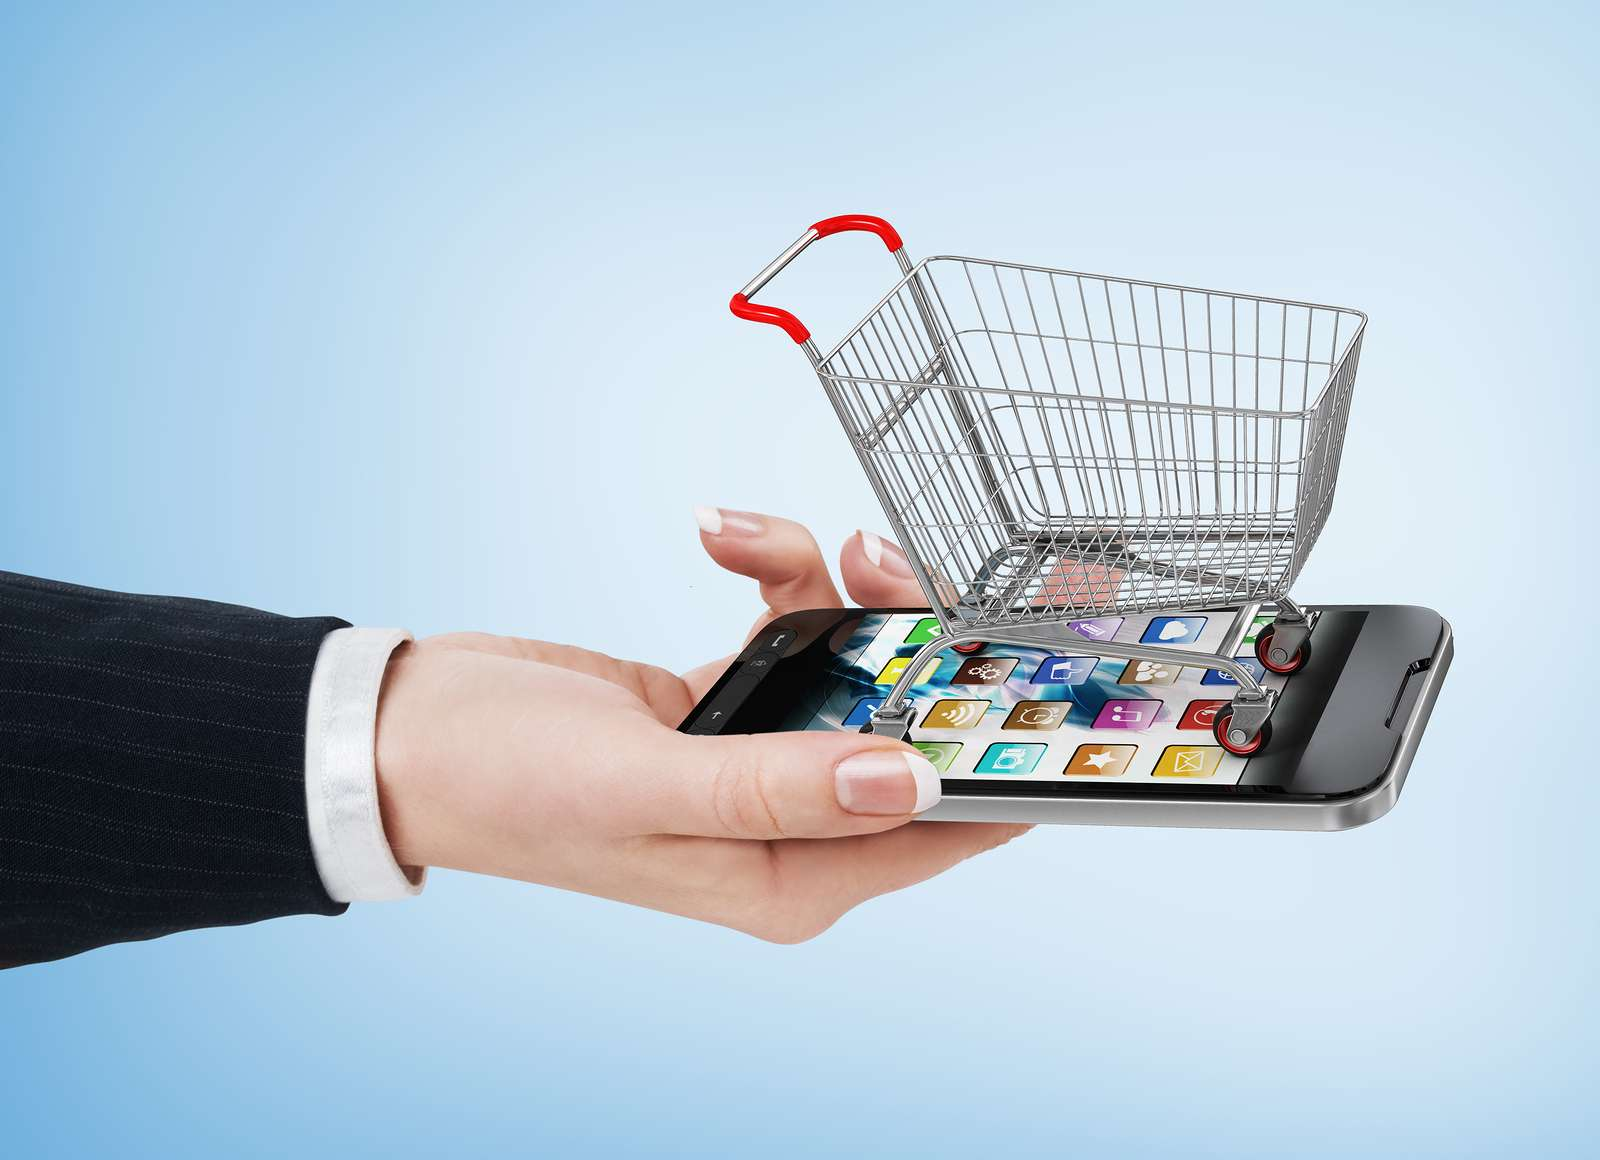 Keep These 3 Things in Mind When Marketing Your eCommerce Business